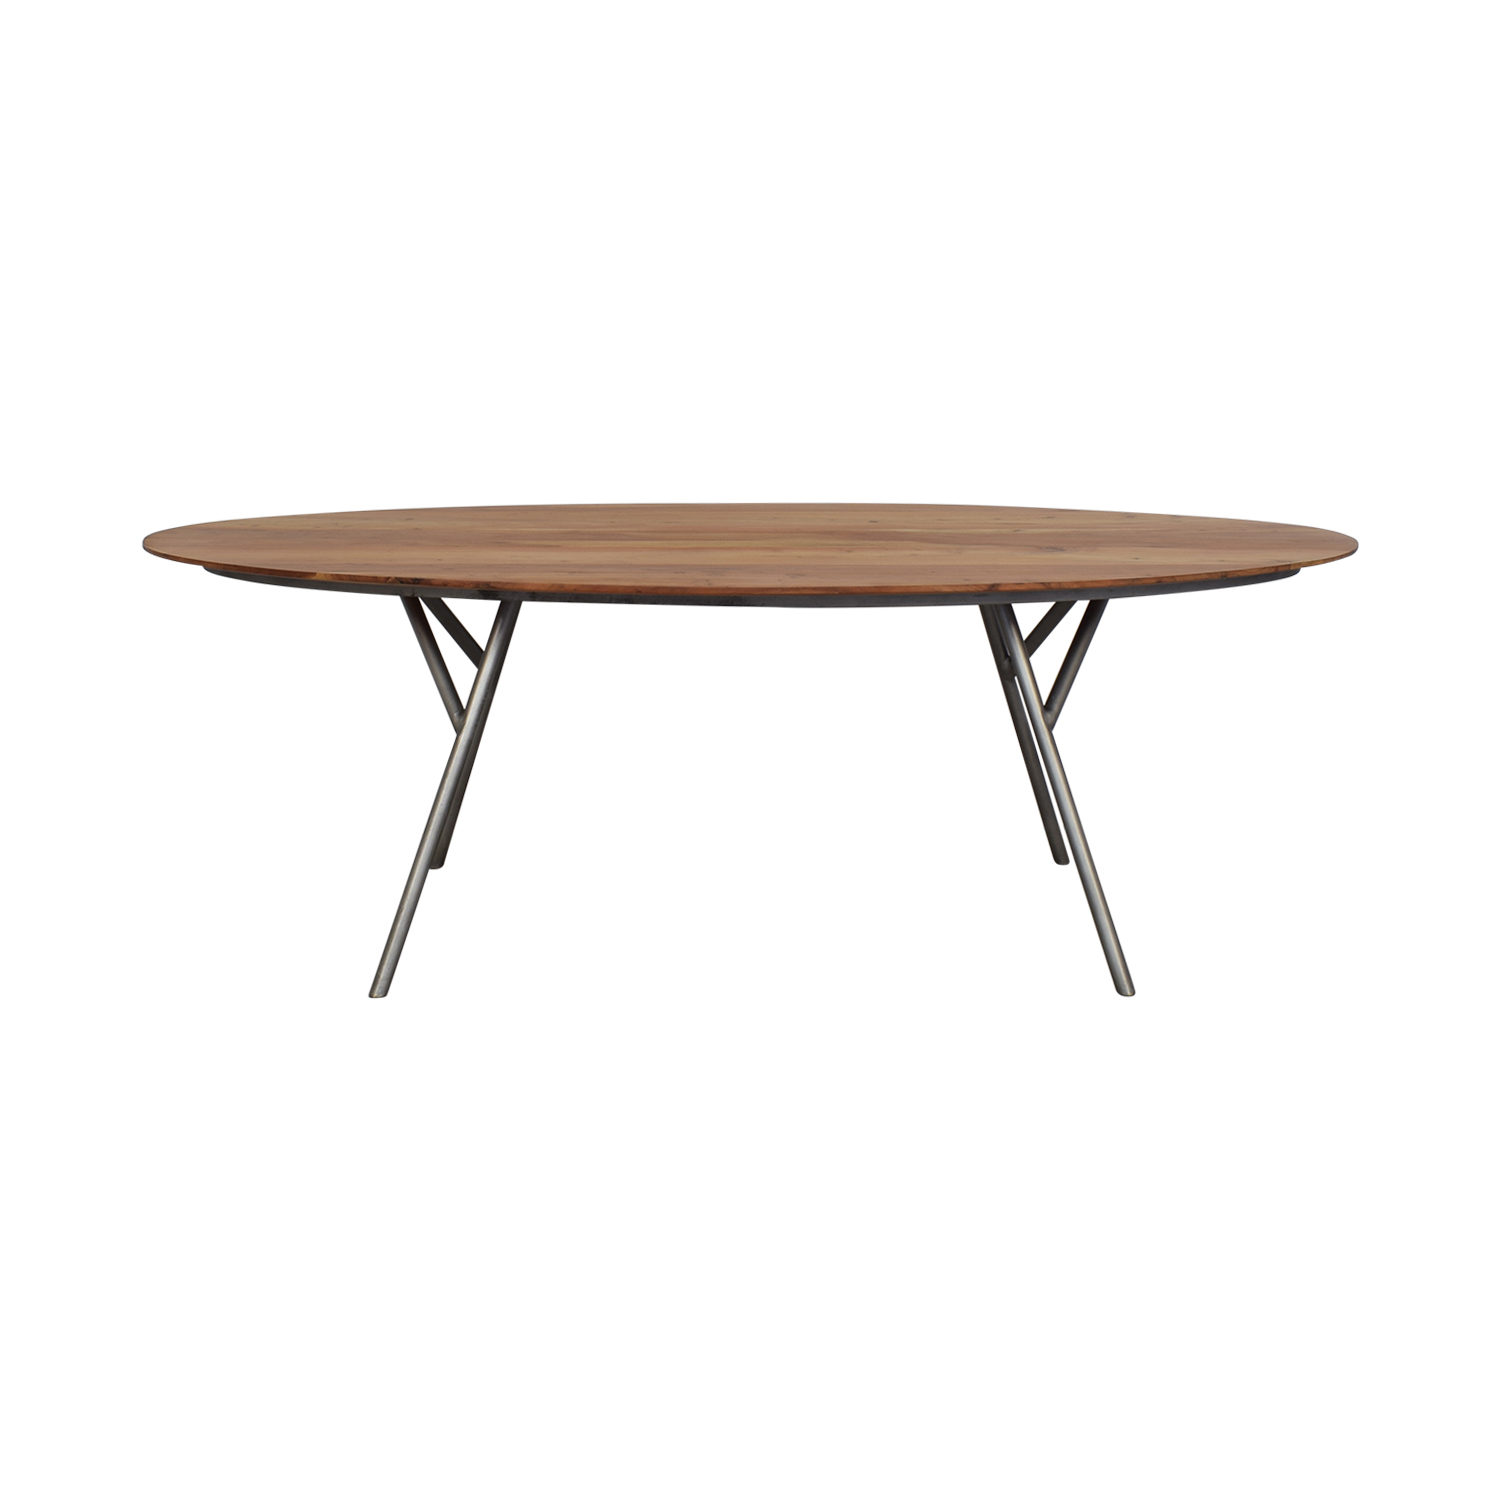 CB2 CB2 Oval Dining Table nj